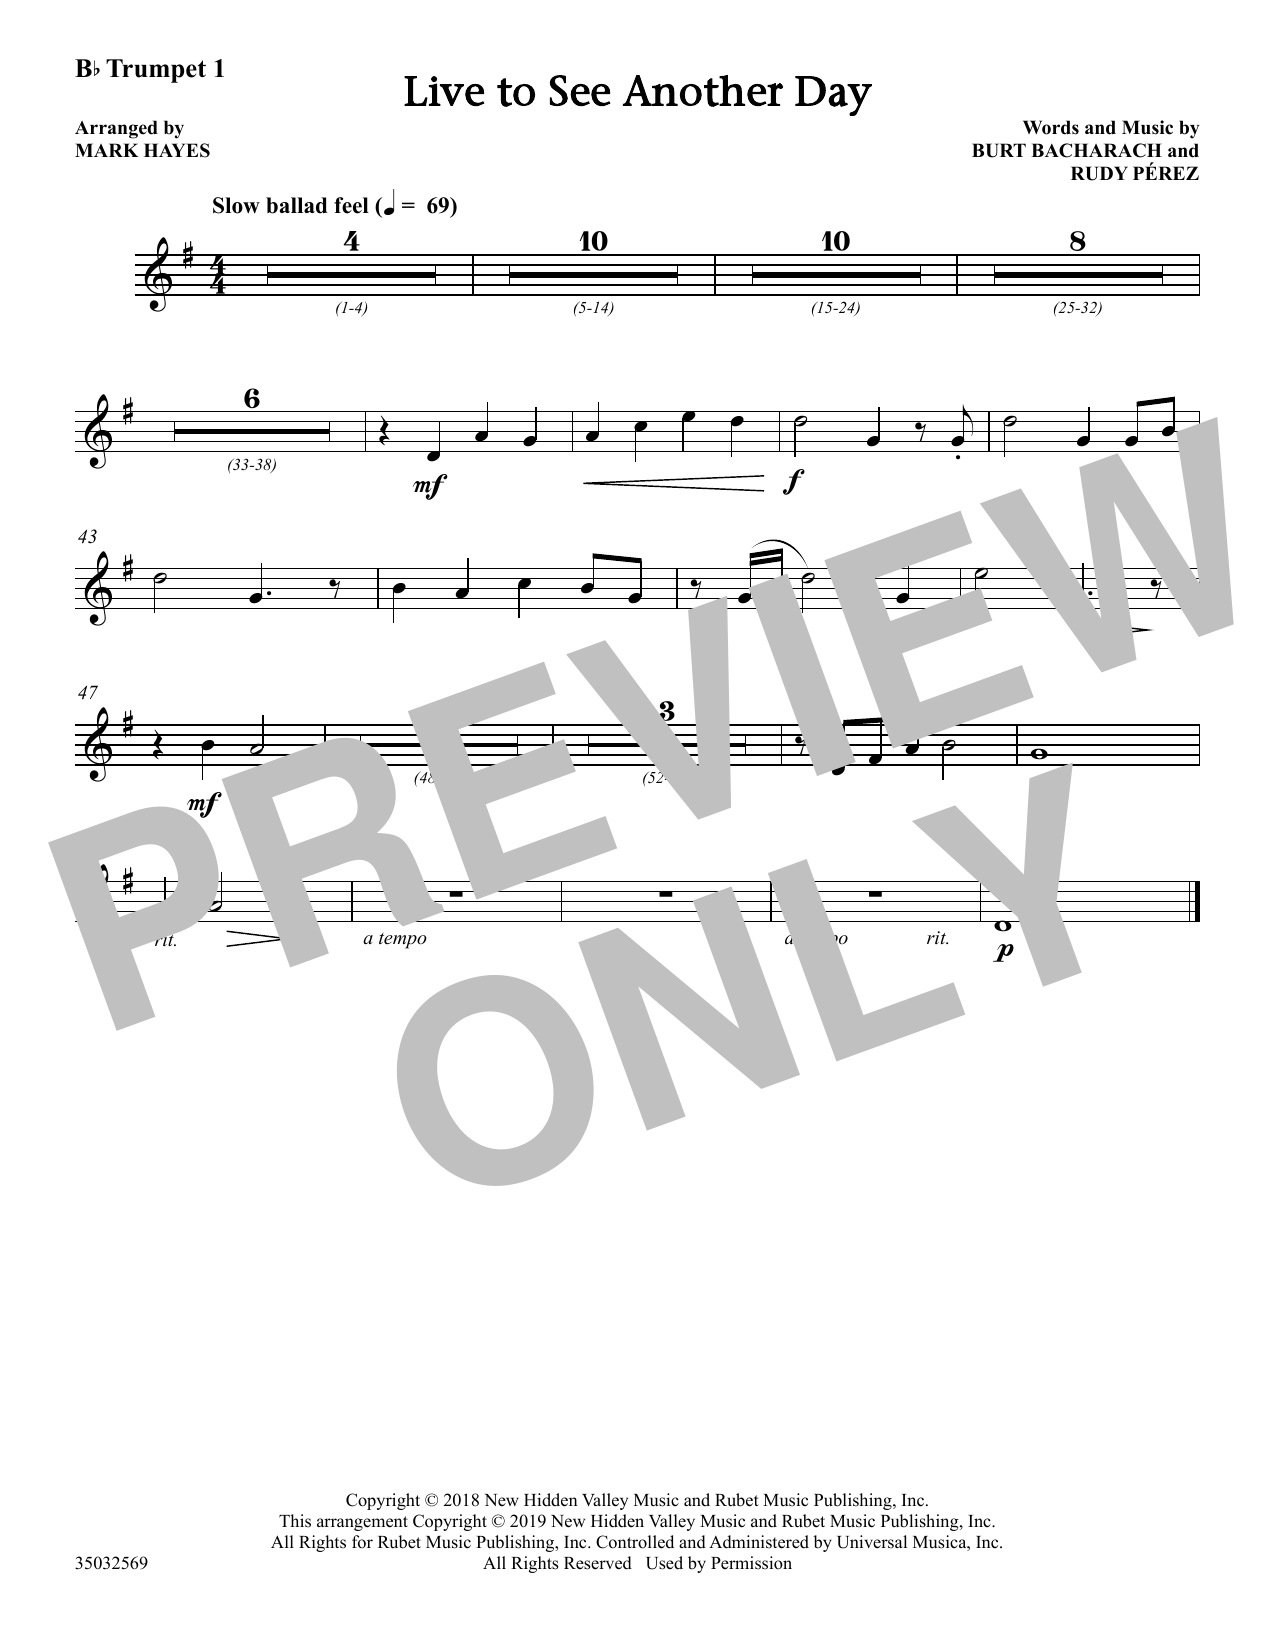 Live to See Another Day (arr  Mark Hayes) - Bb Trumpet 1 by Burt Bacharach  & Rudy Perez Choir Instrumental Pak Digital Sheet Music